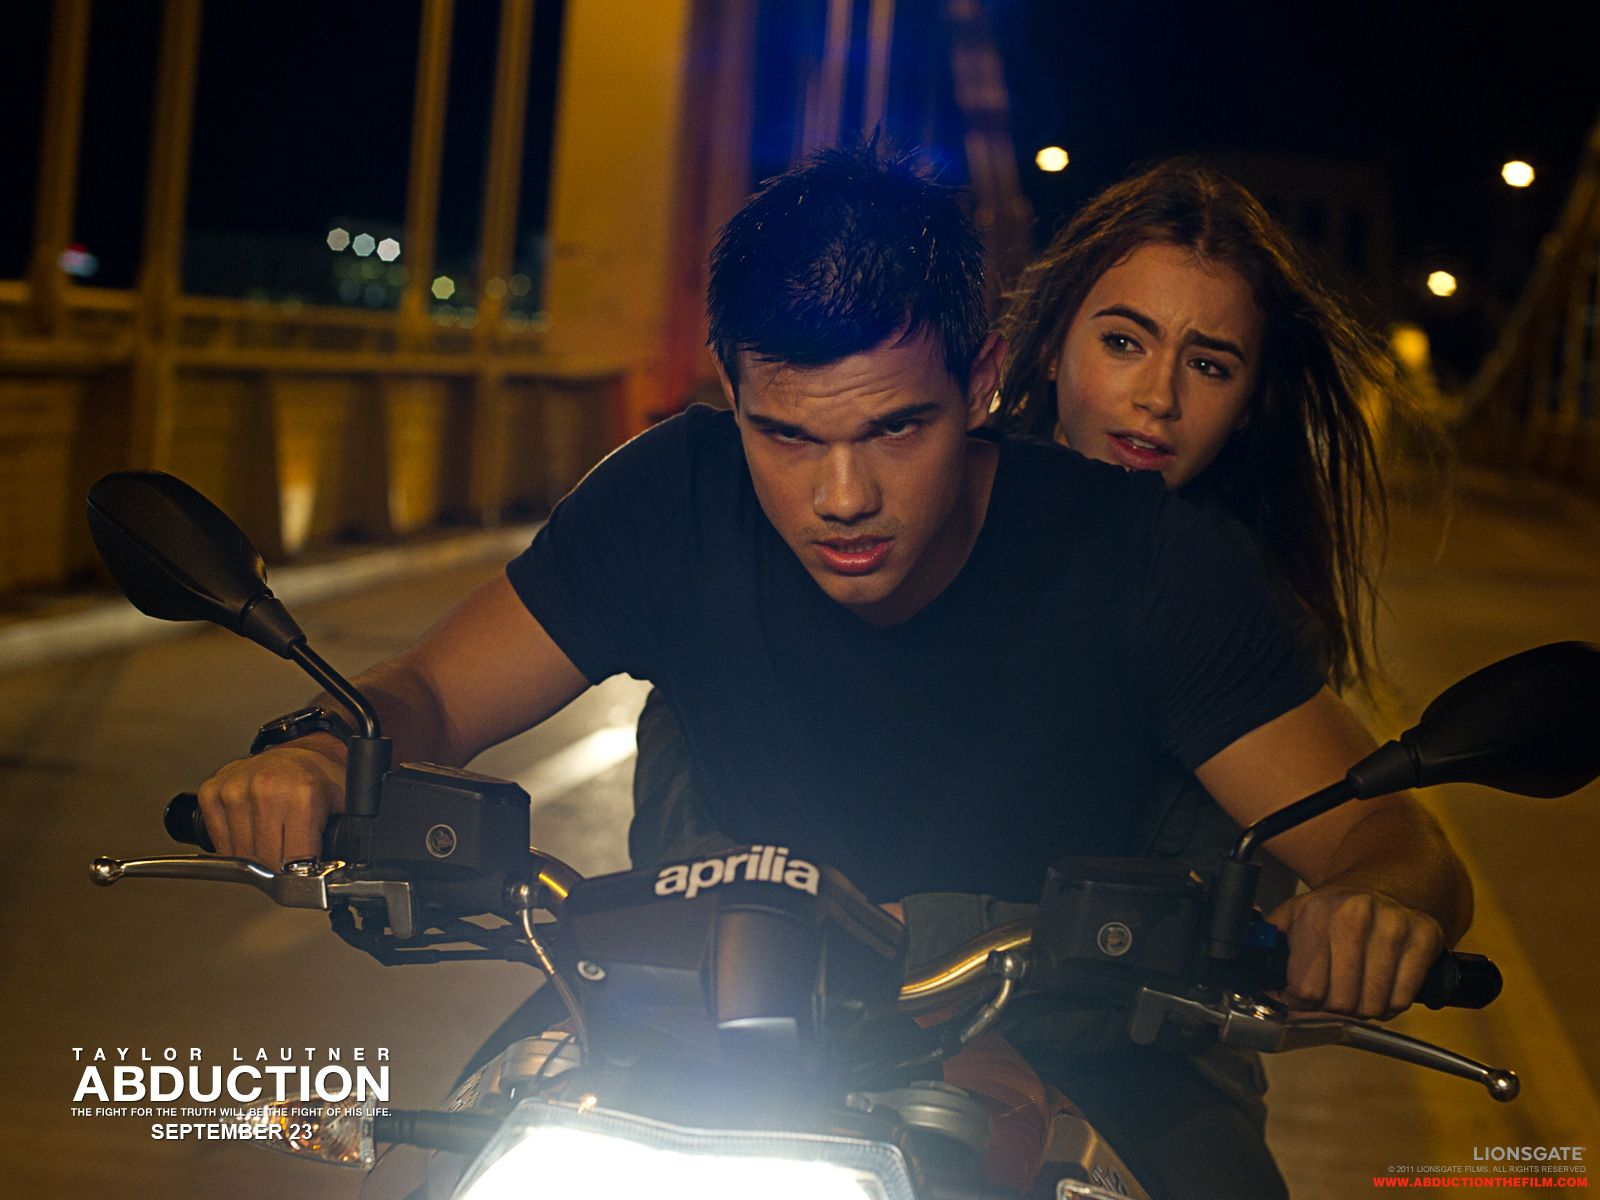 Pin By Camille Visser On Movie Scenes Taylor Lautner